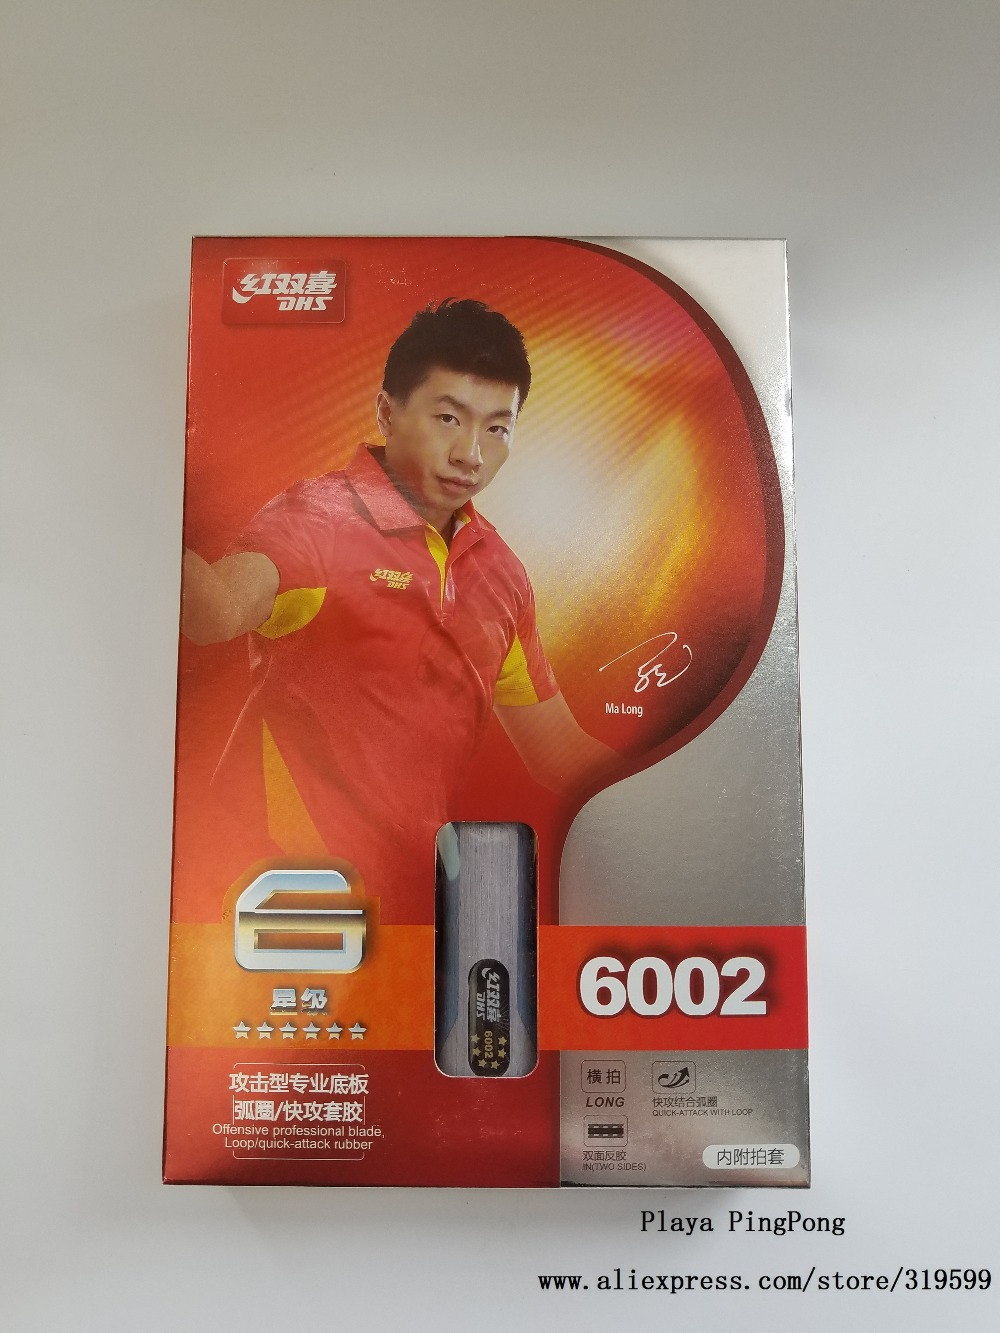 DHS A6002 A6006 6002 6 STAR Shakehand Table Tennis Racket (Shakehand) with Case for Ping Pong dhs 6002 long shakehand fl table tennis ping pong racket a paddle bag